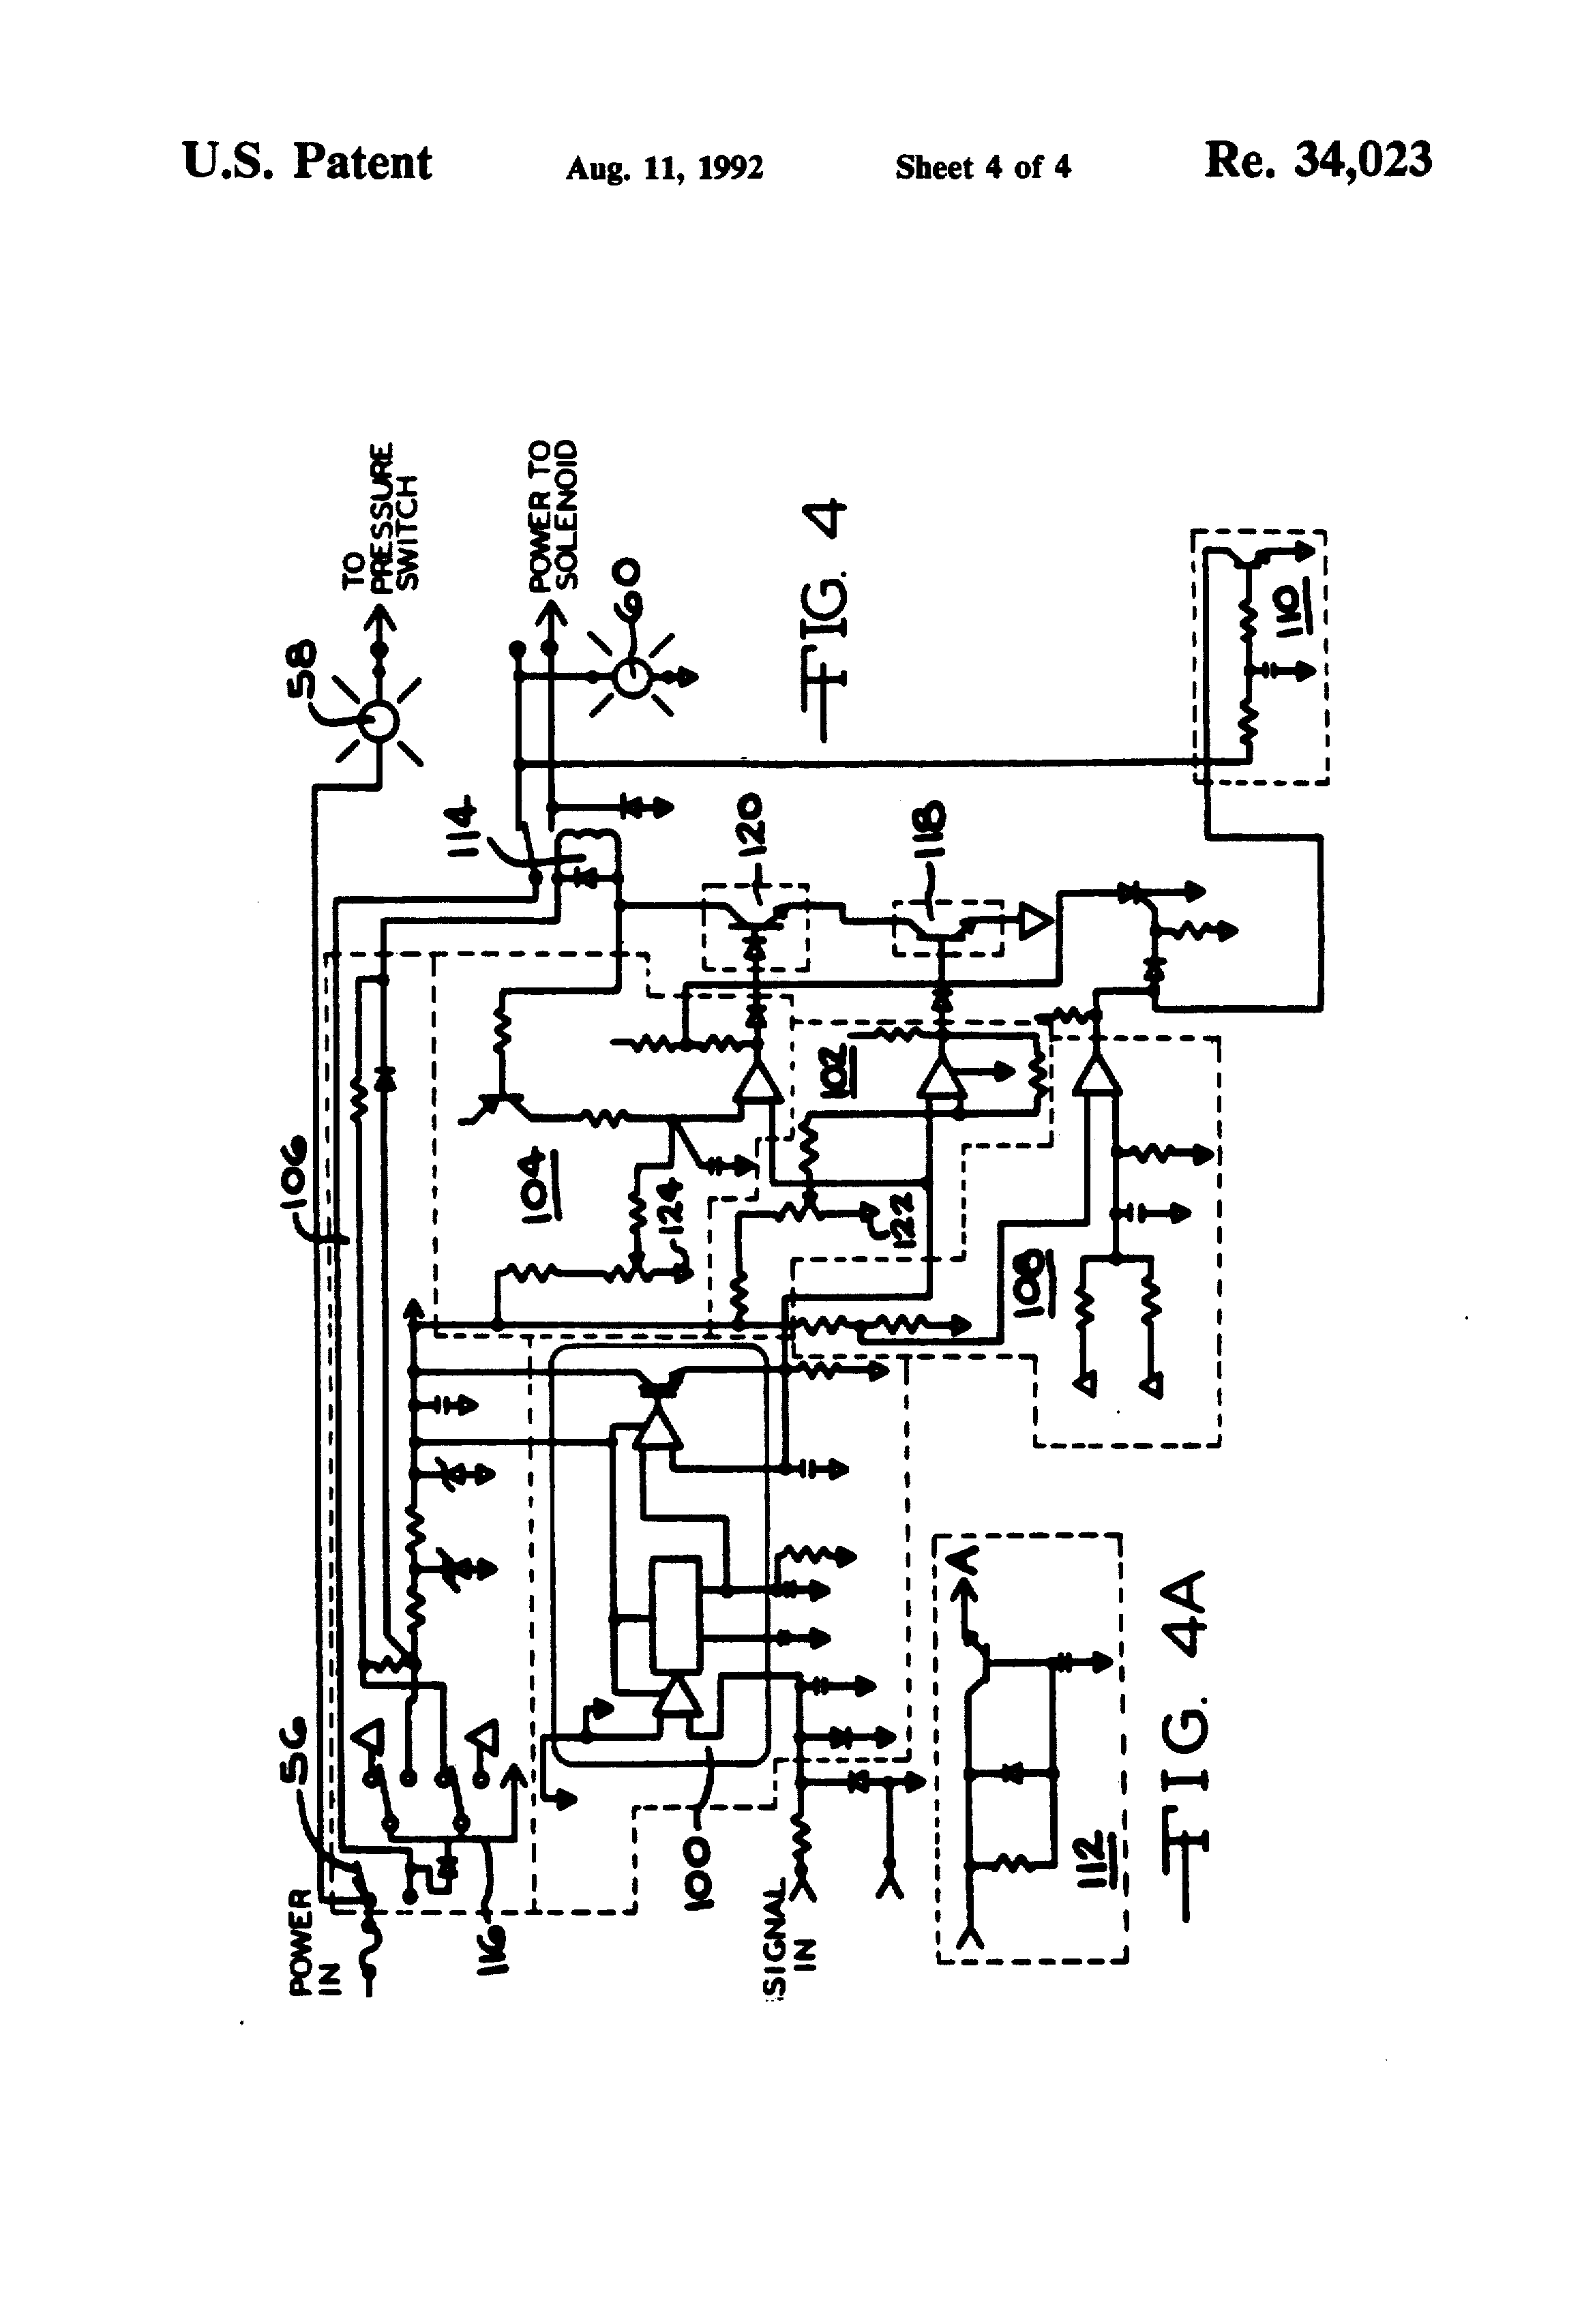 USRE34023 5 muncie pto wiring diagram muncie pto valve \u2022 wiring diagrams j muncie pto wiring diagram at alyssarenee.co